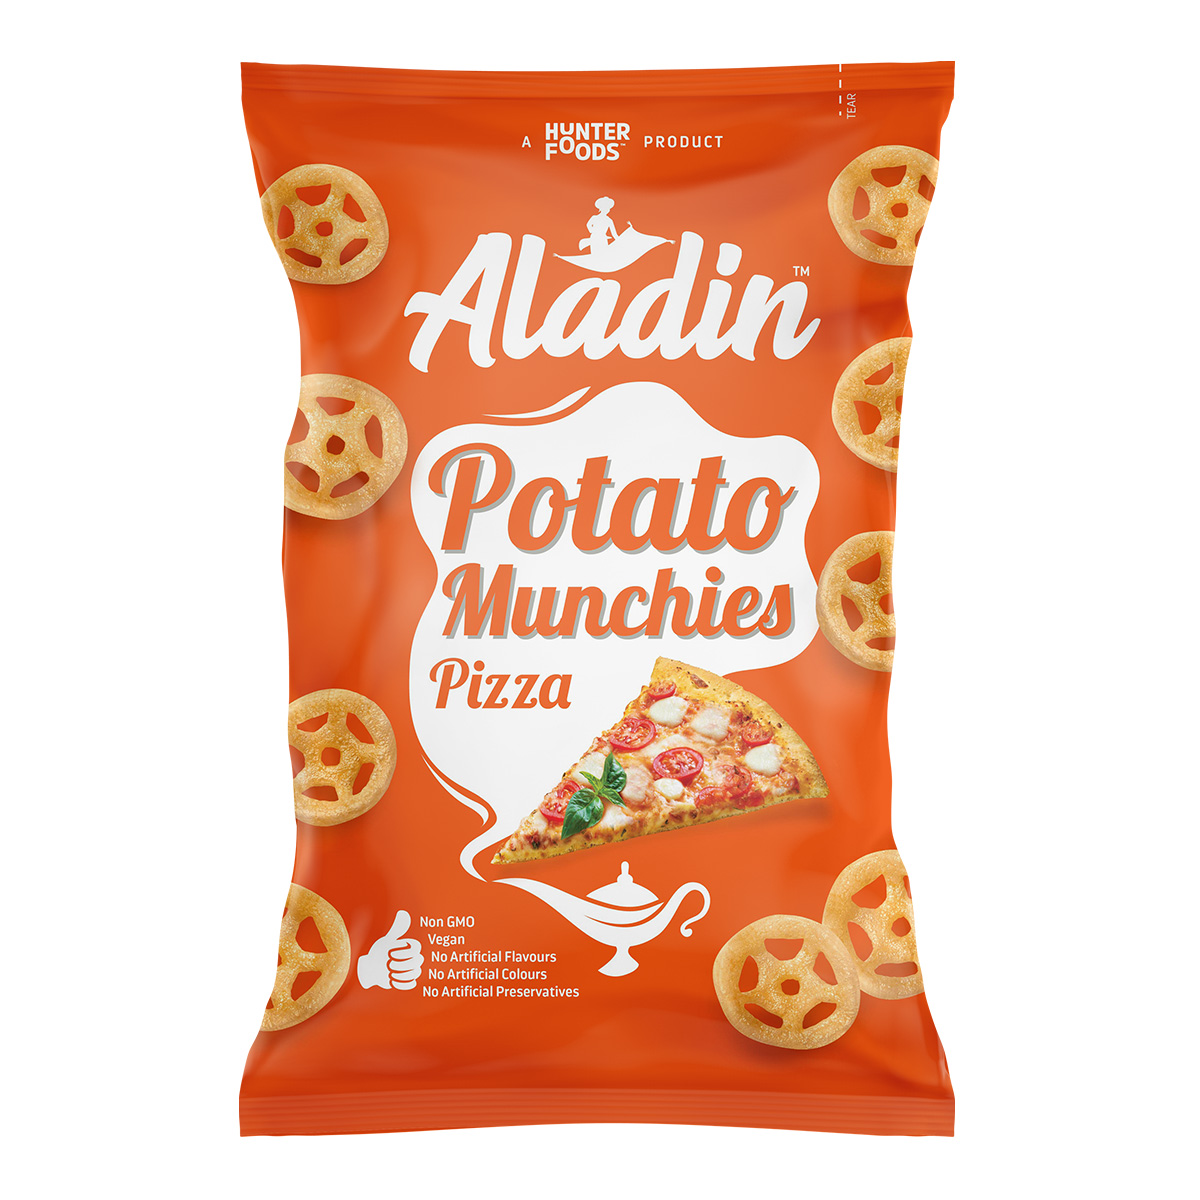 Aladin Potato Munchies – Ketchup (60gm)